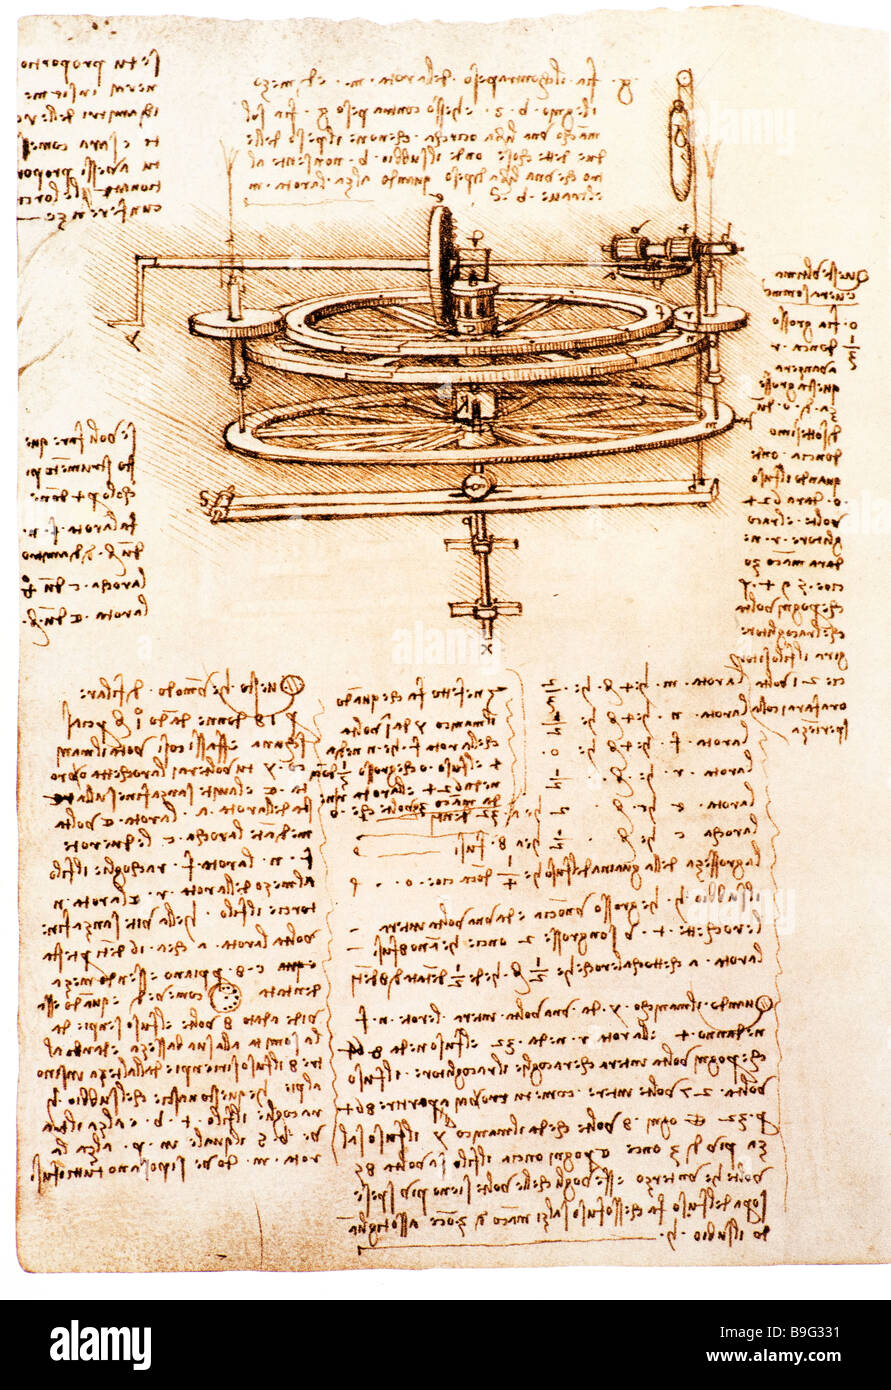 study of mechanics of a spinning wheel by Leonardo da Vinci  1493-1497 - Stock Image